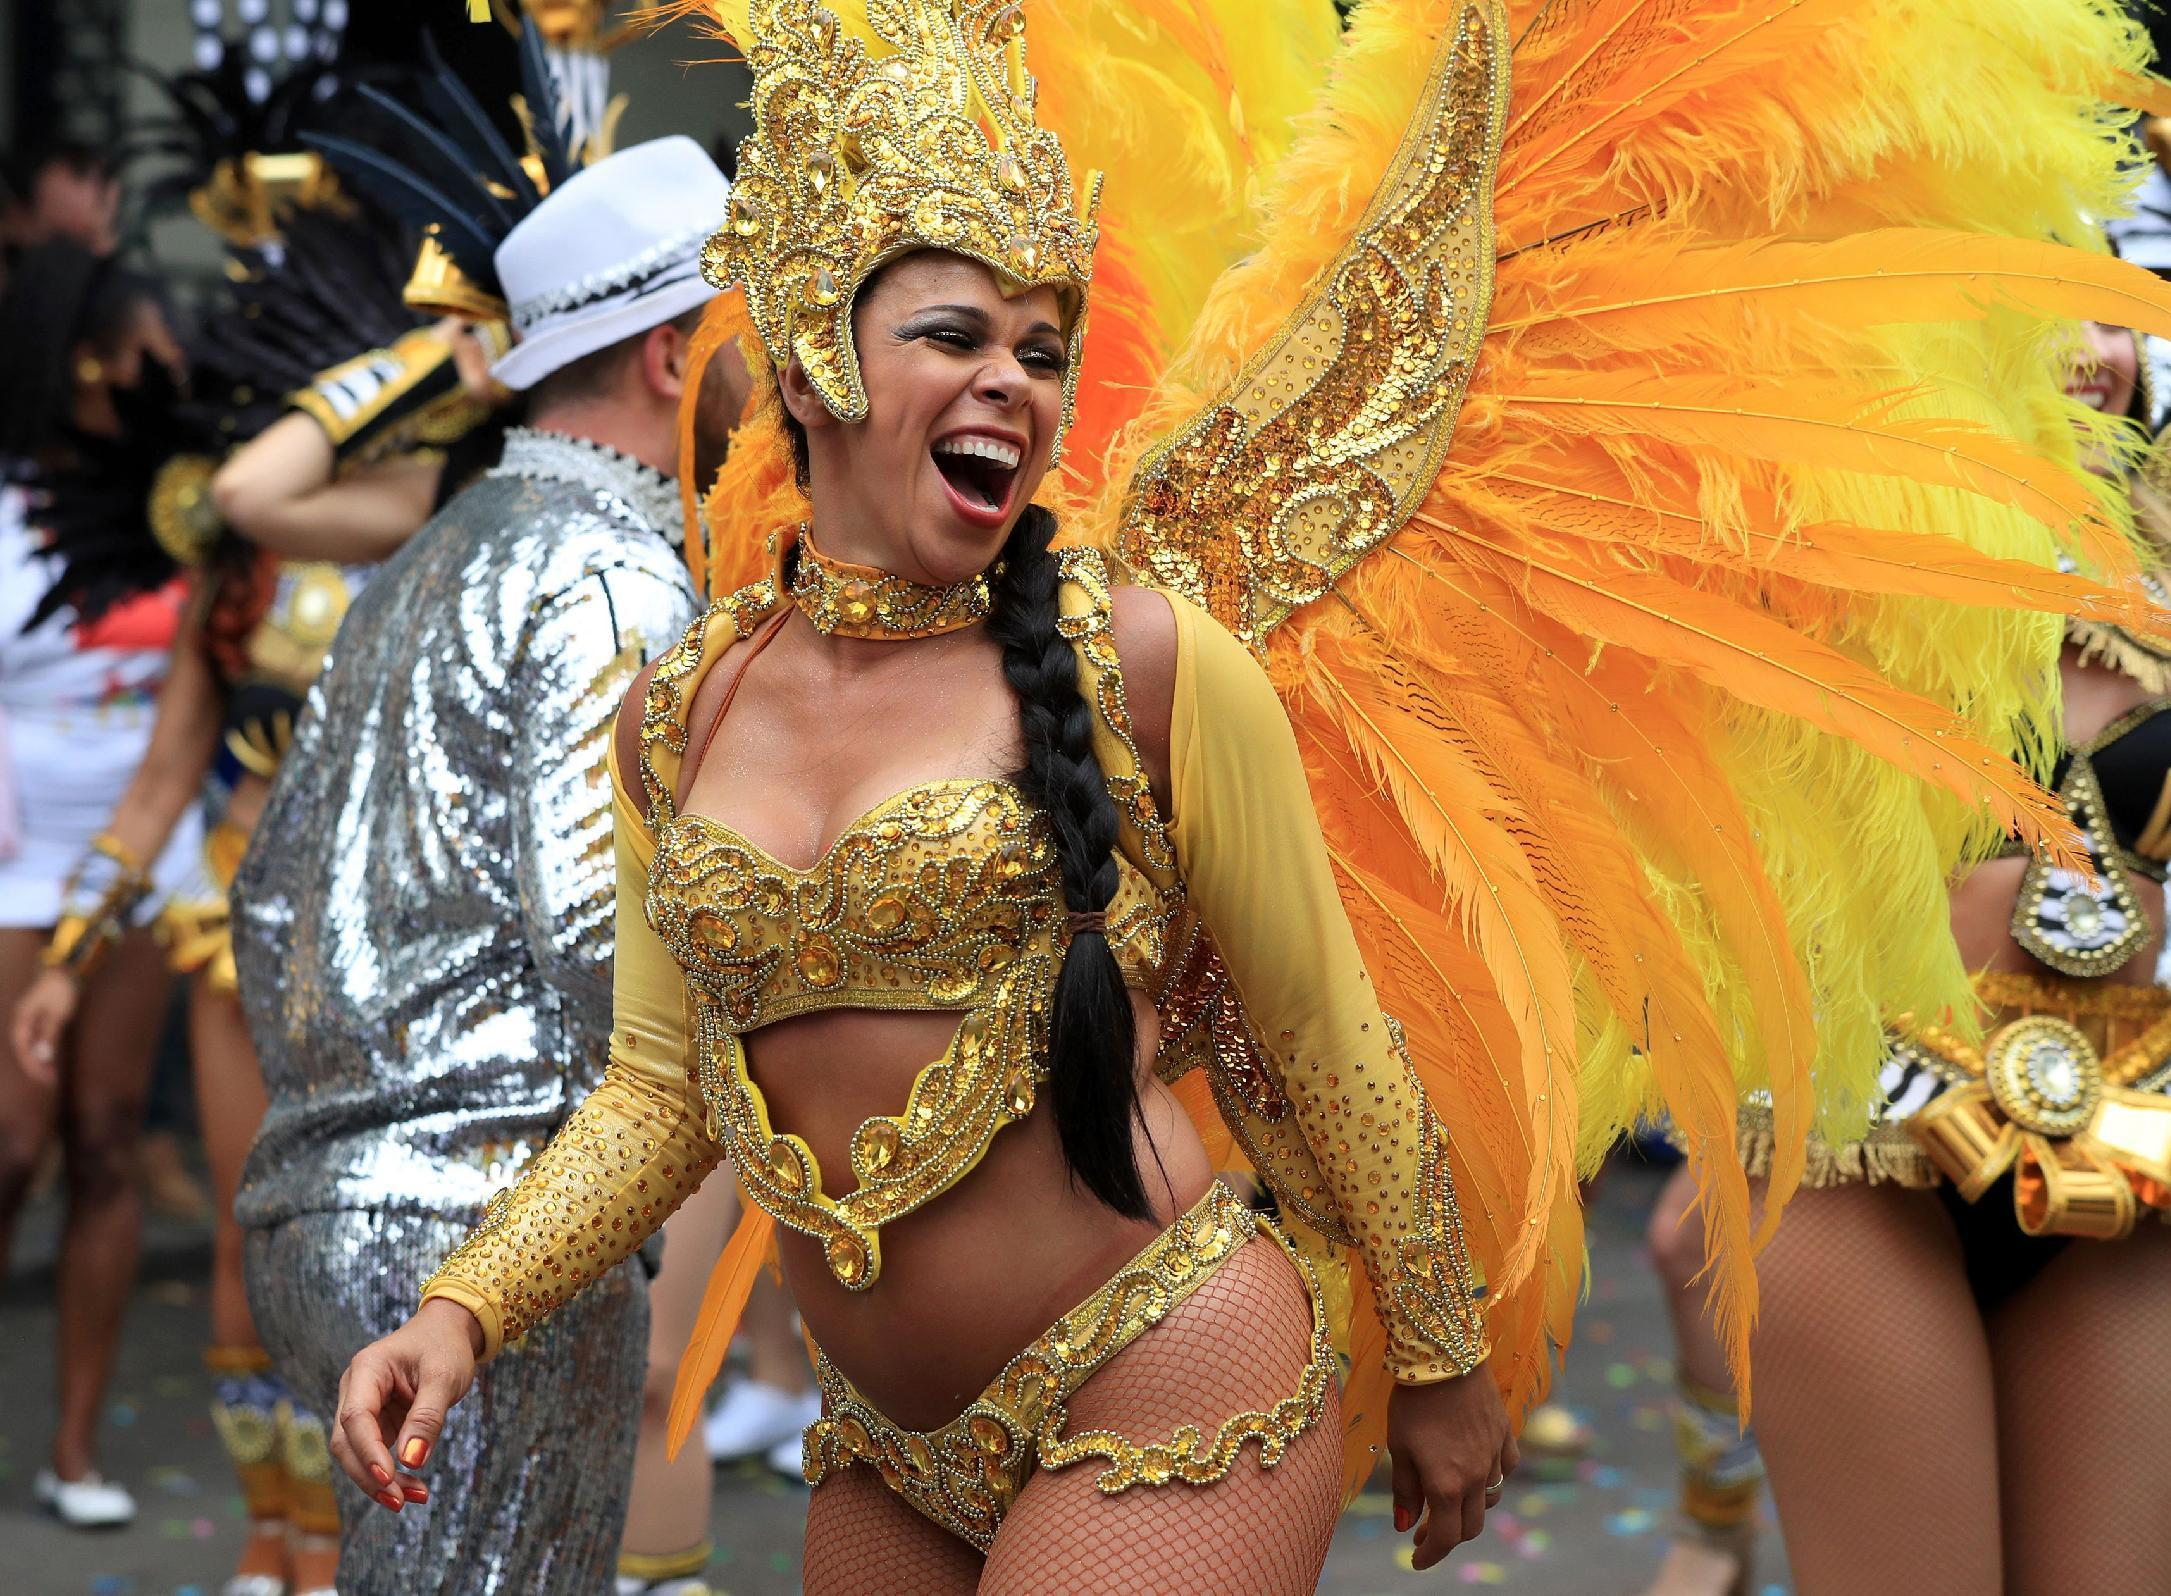 London police arrest 240 at Notting Hill Carnival